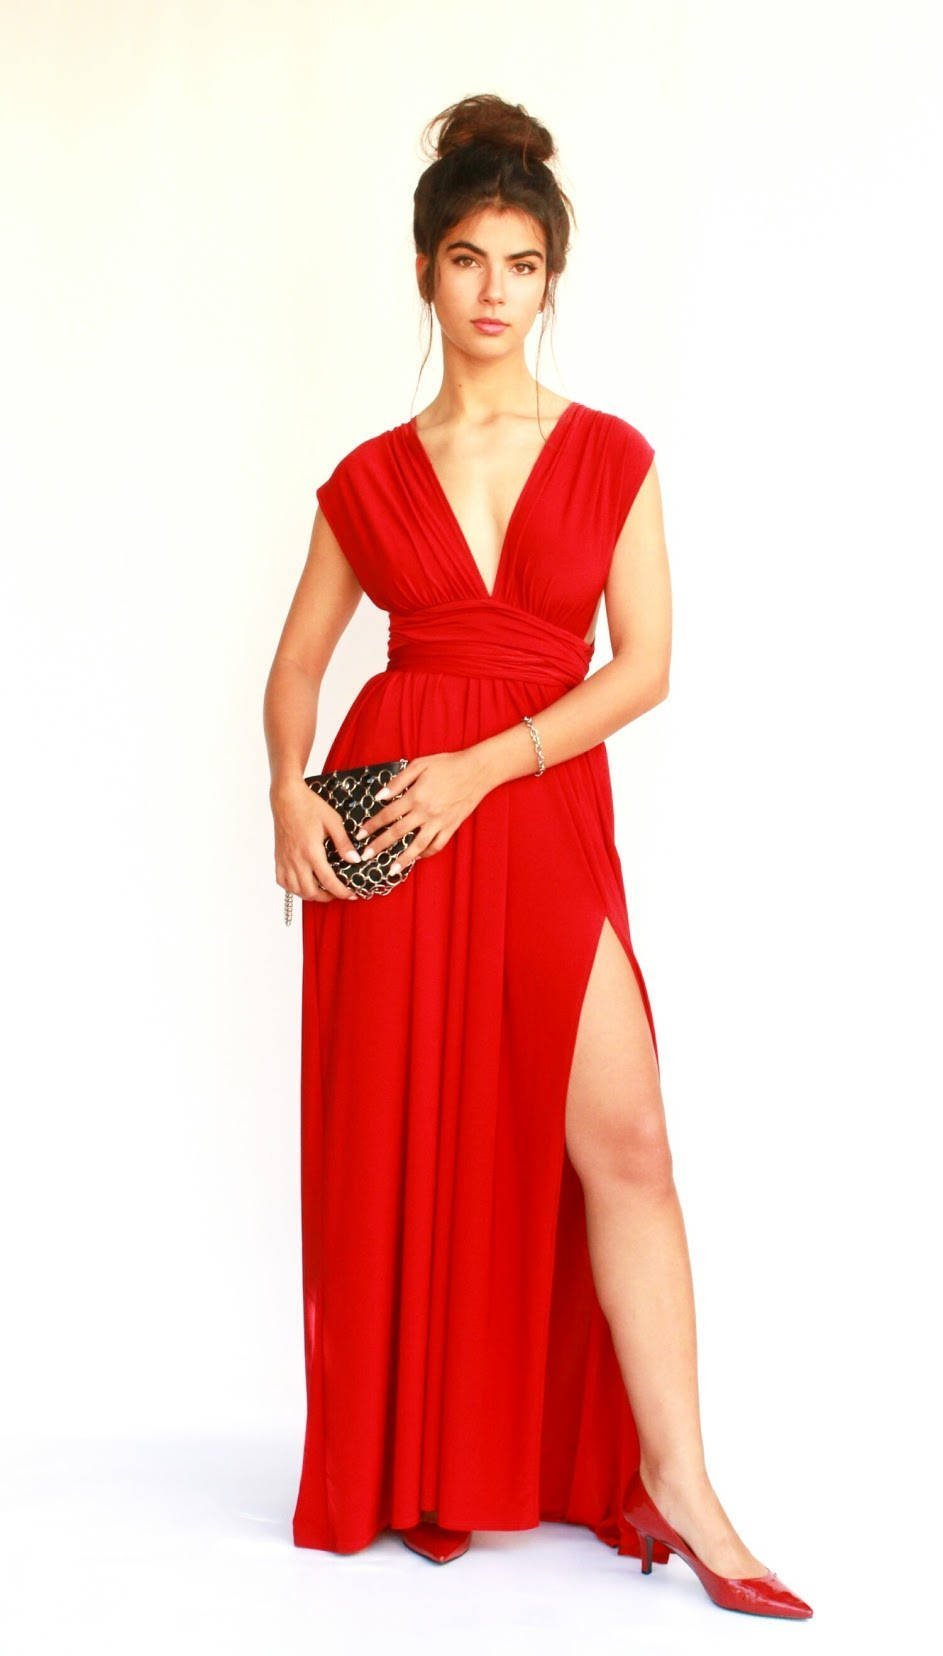 Women's Infinity Red Prom Dress, Bridesmaid Evening Dress, Maxi Long Dress for Wedding, Elegant Lycra Gown